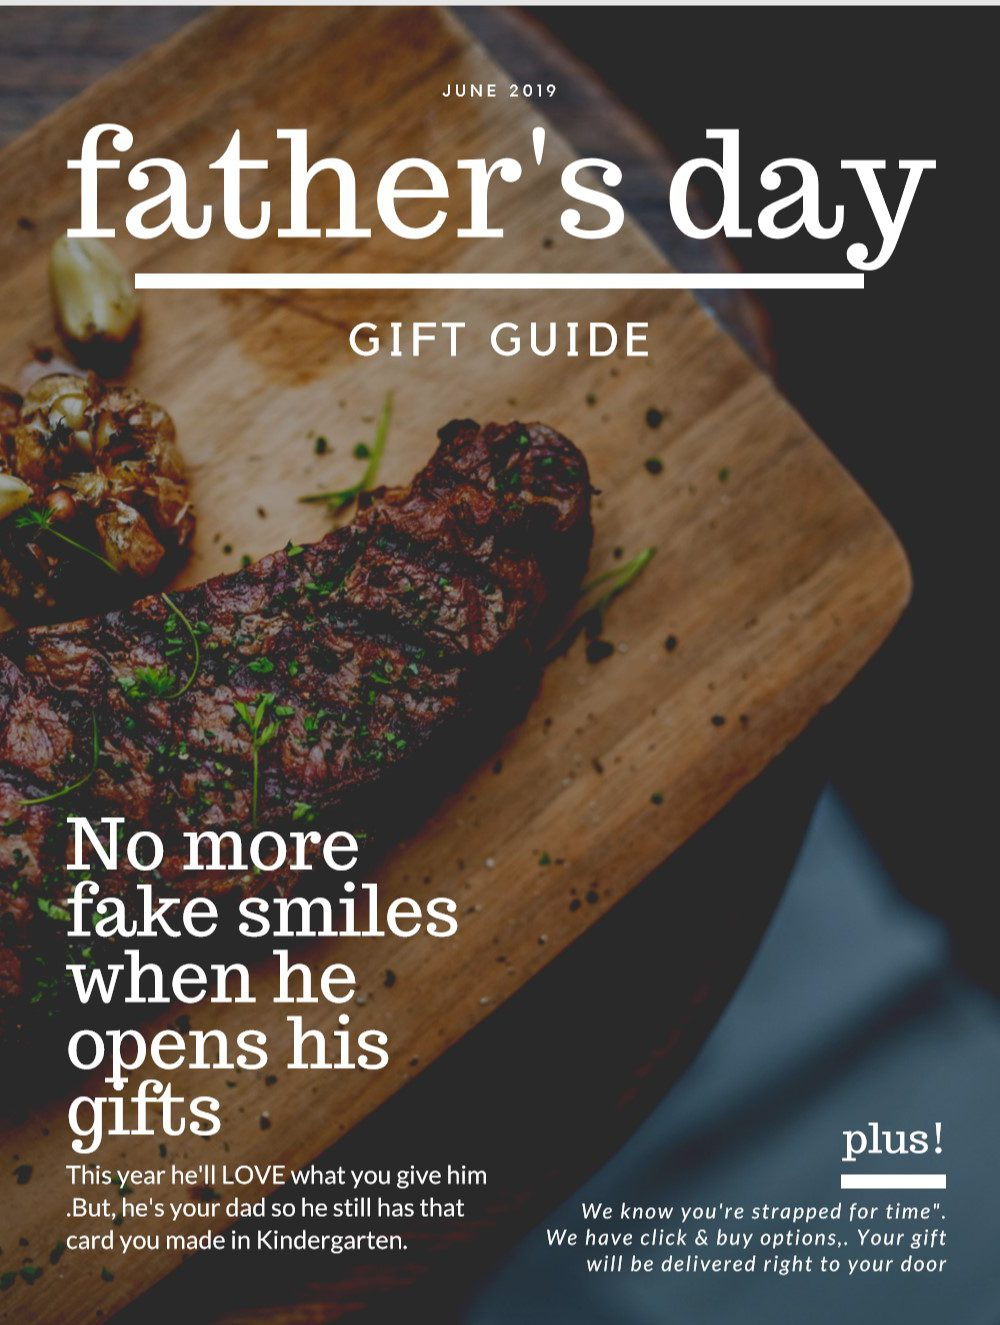 The Best Father's Day Guide